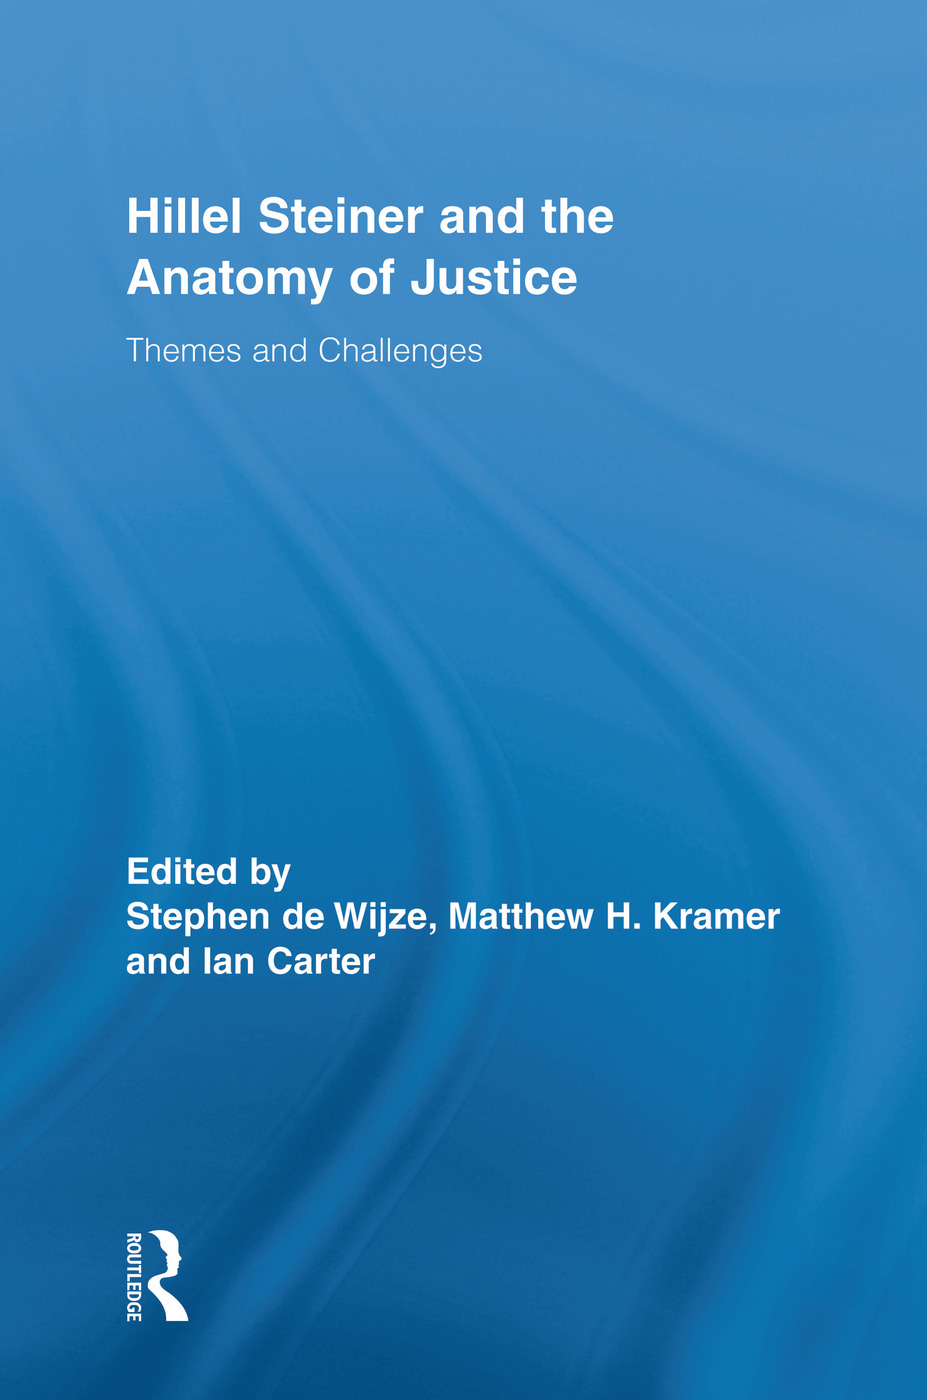 Hillel Steiner and the Anatomy of Justice